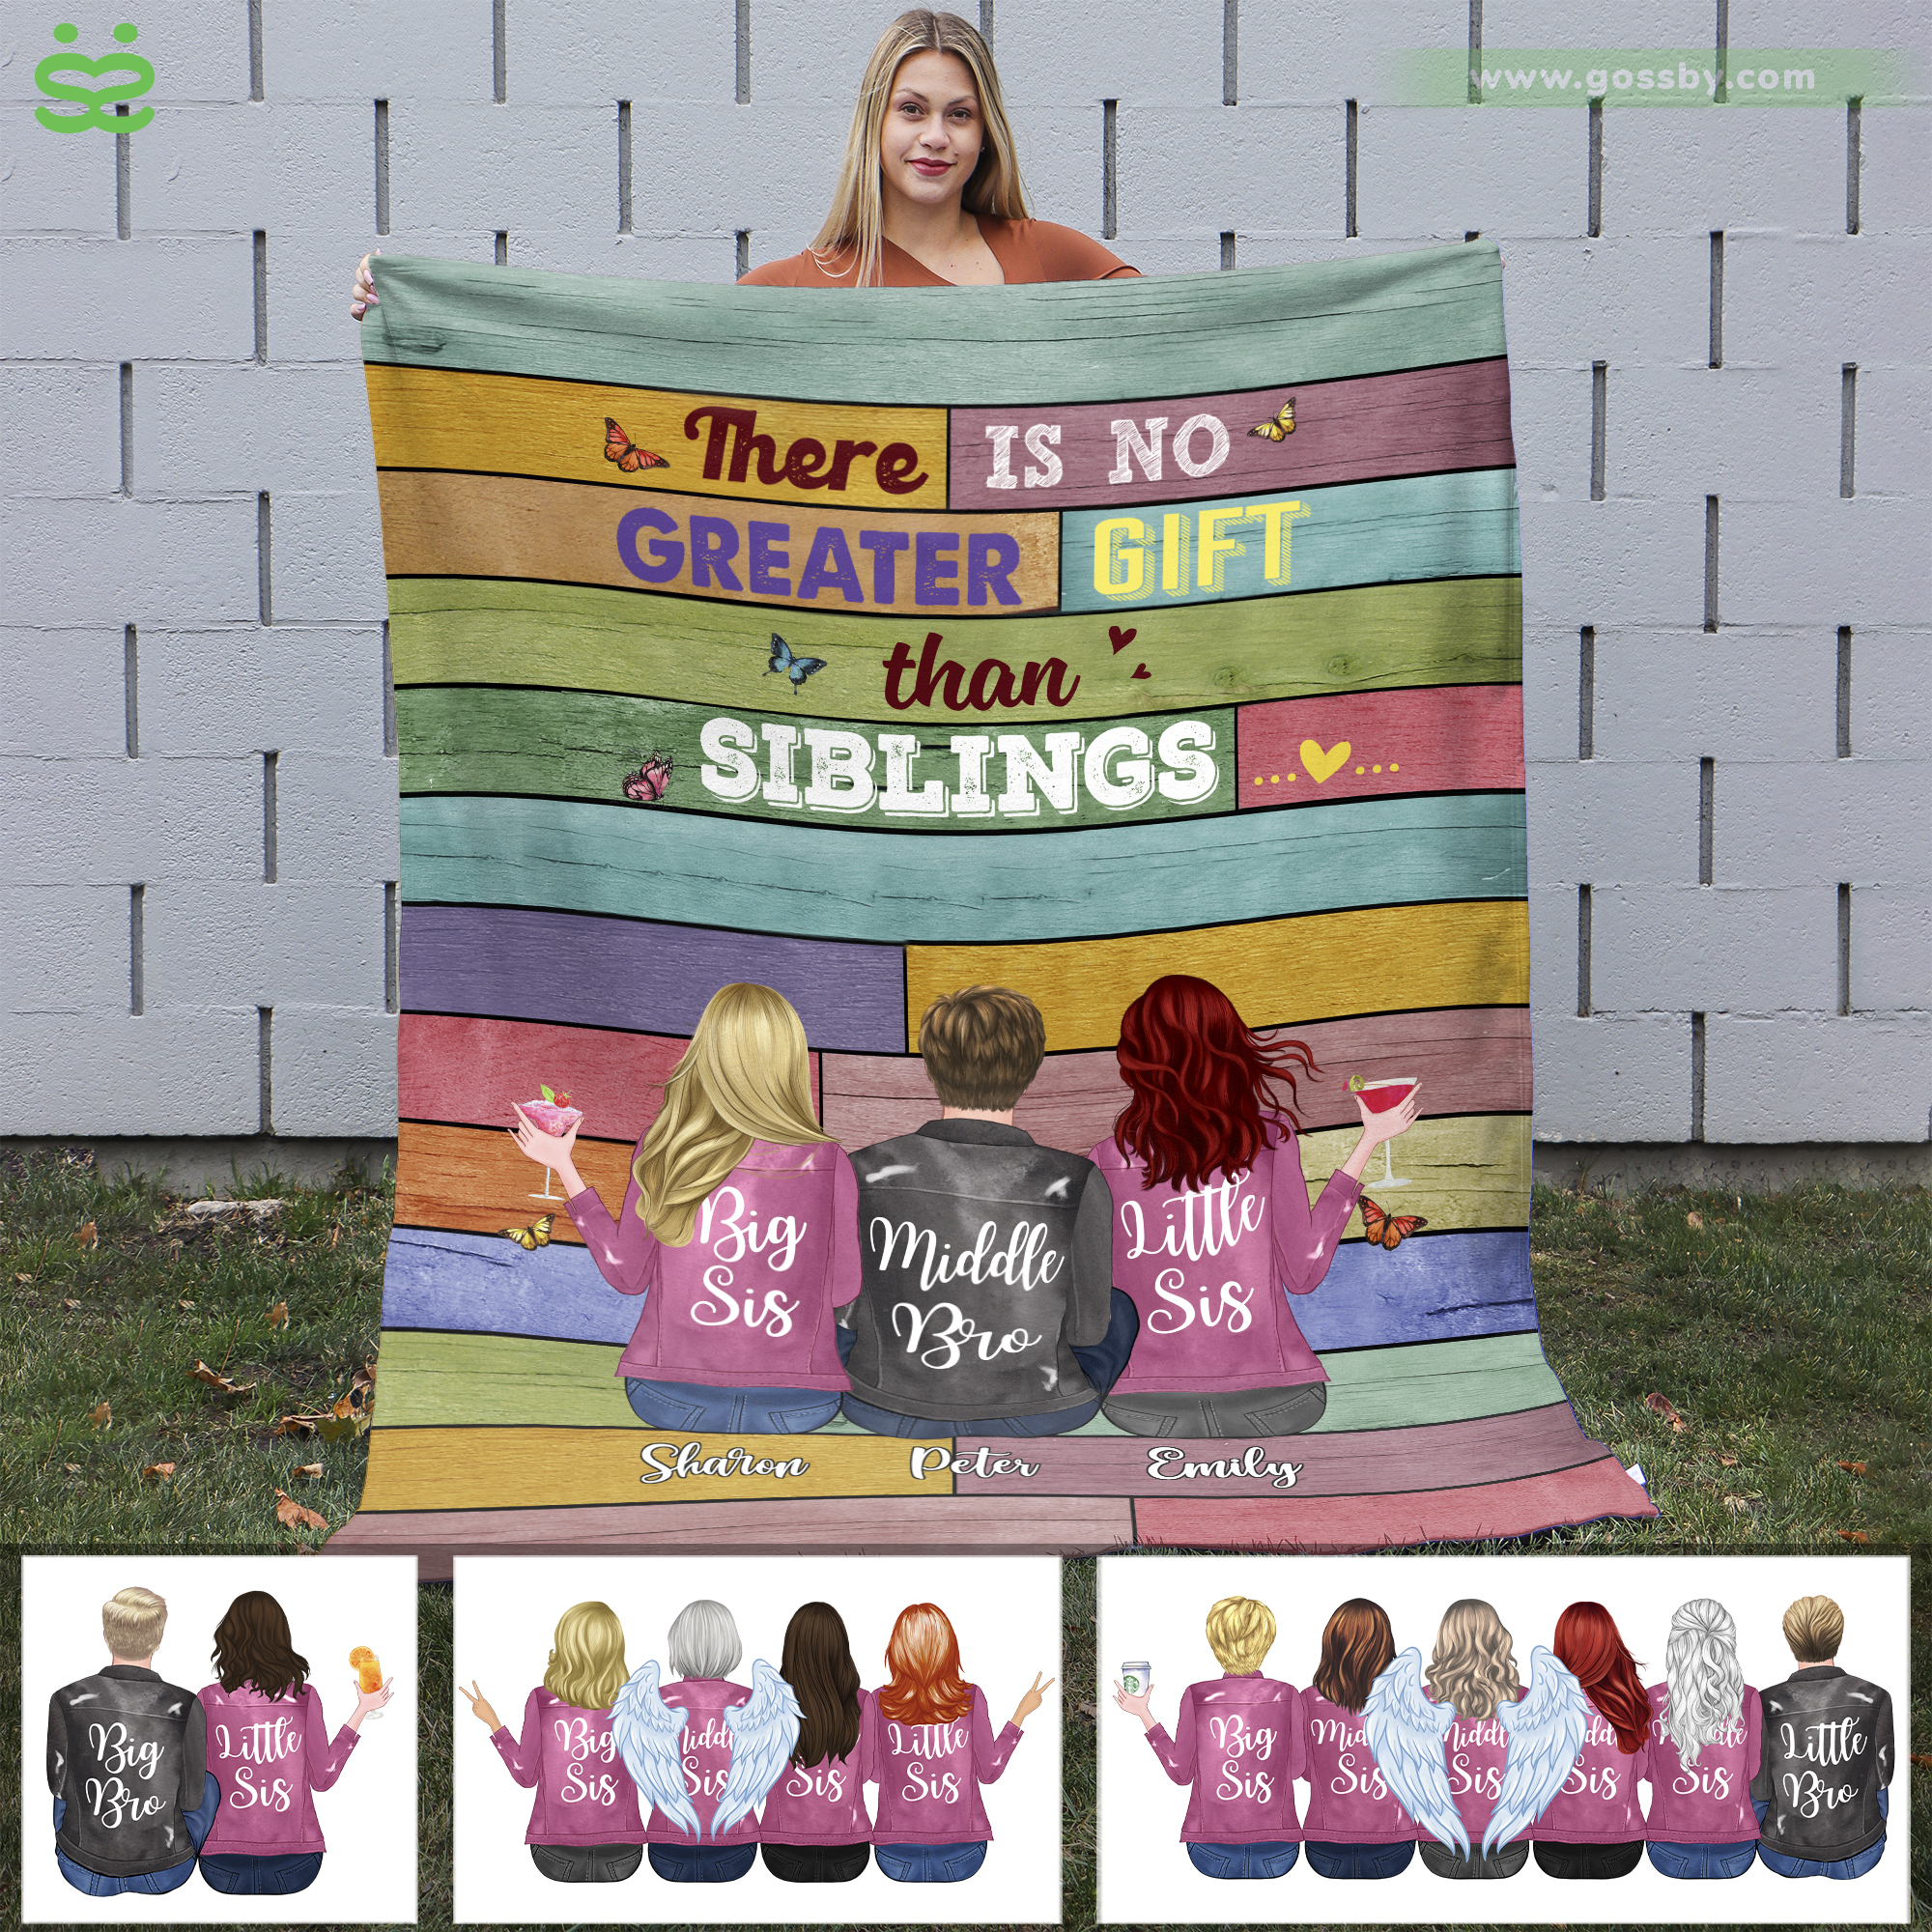 Personalized Blanket - Up to 6 Siblings - There Is No Greater Gift Than Siblings (6361)